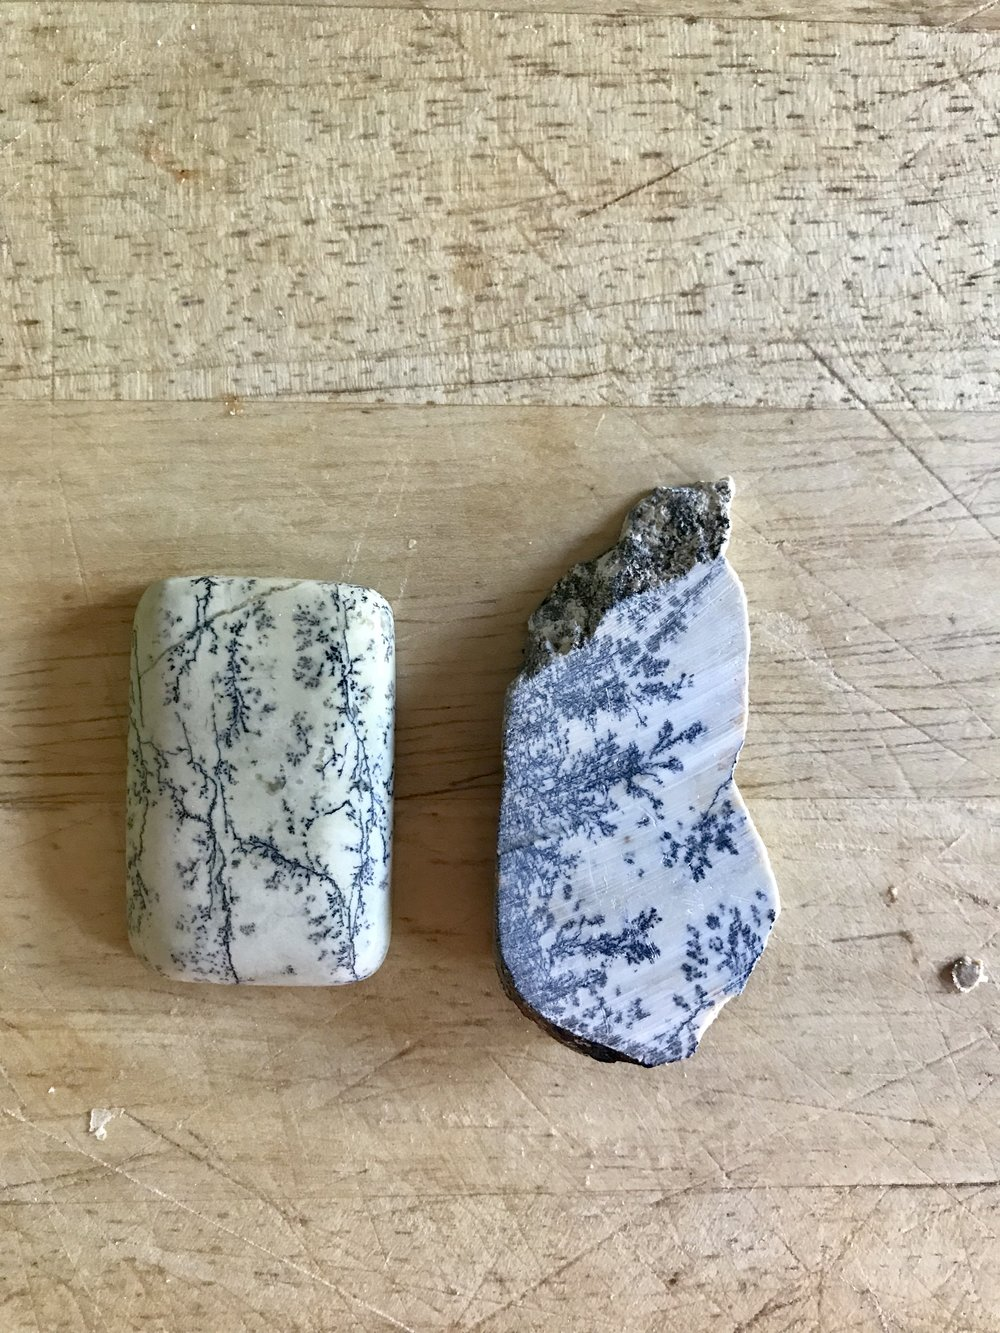 polished next to rough